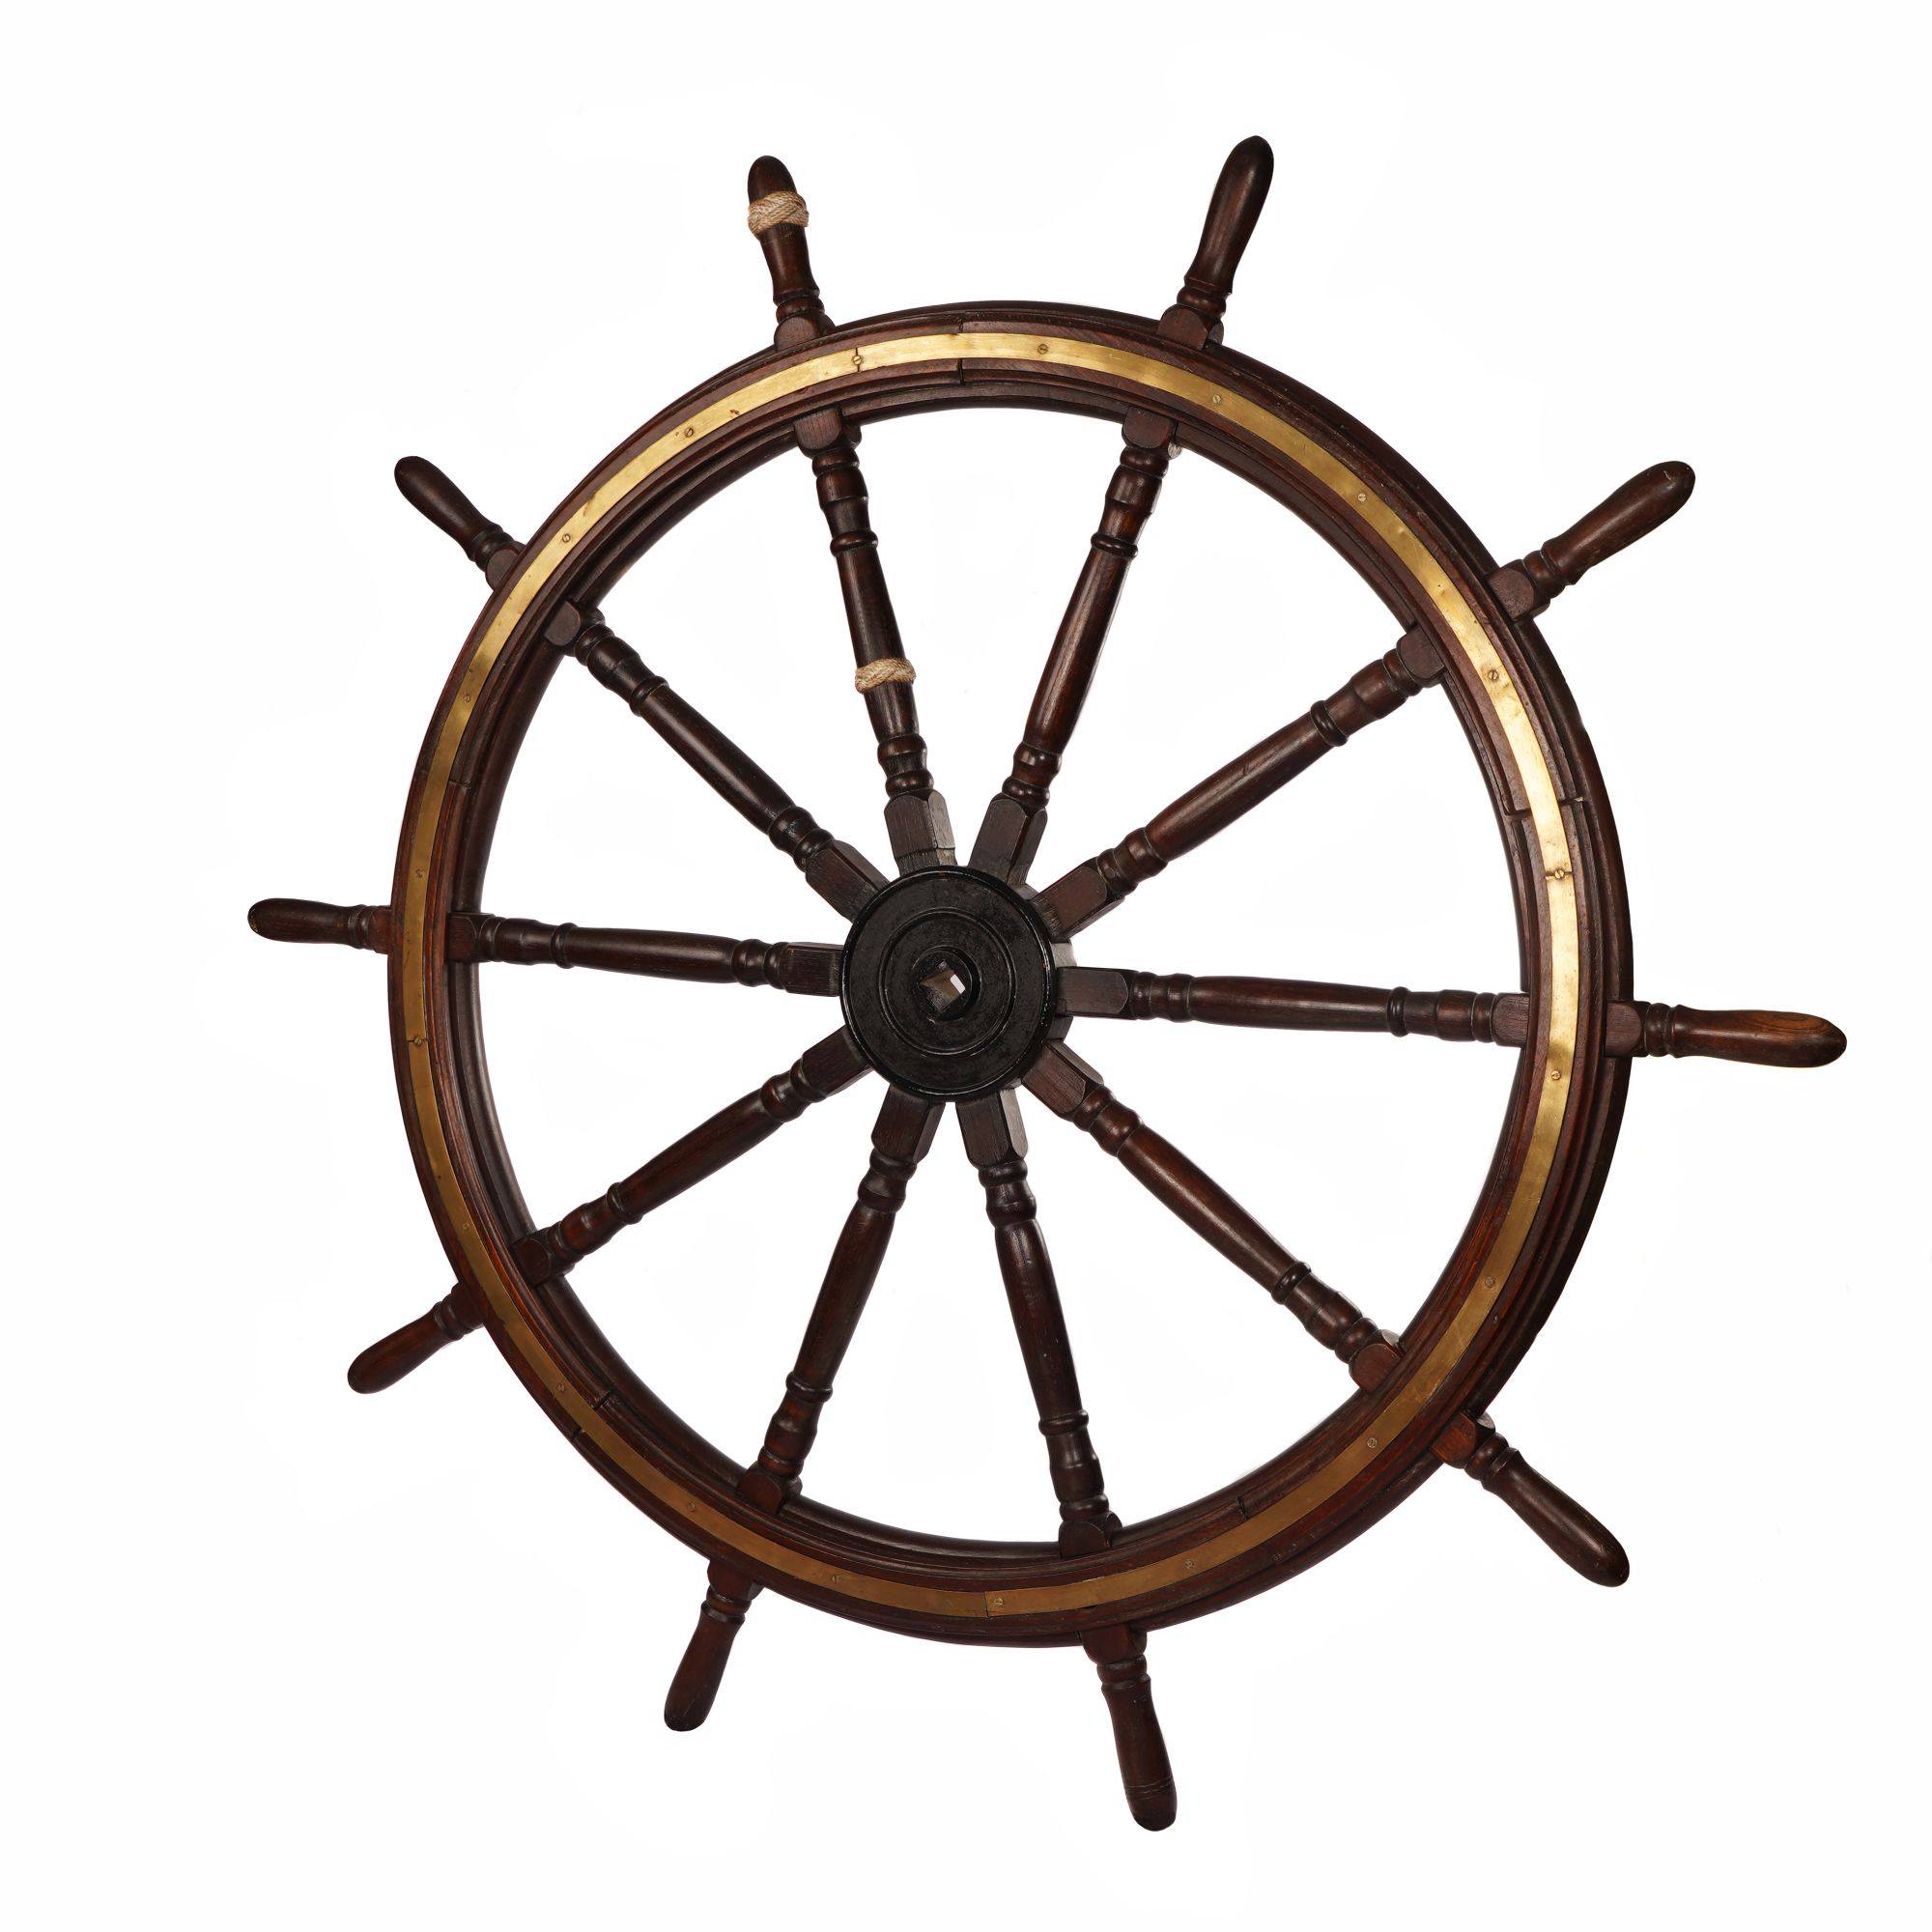 A Fine Original 10 Spoke Ships Wheel Of High Quality